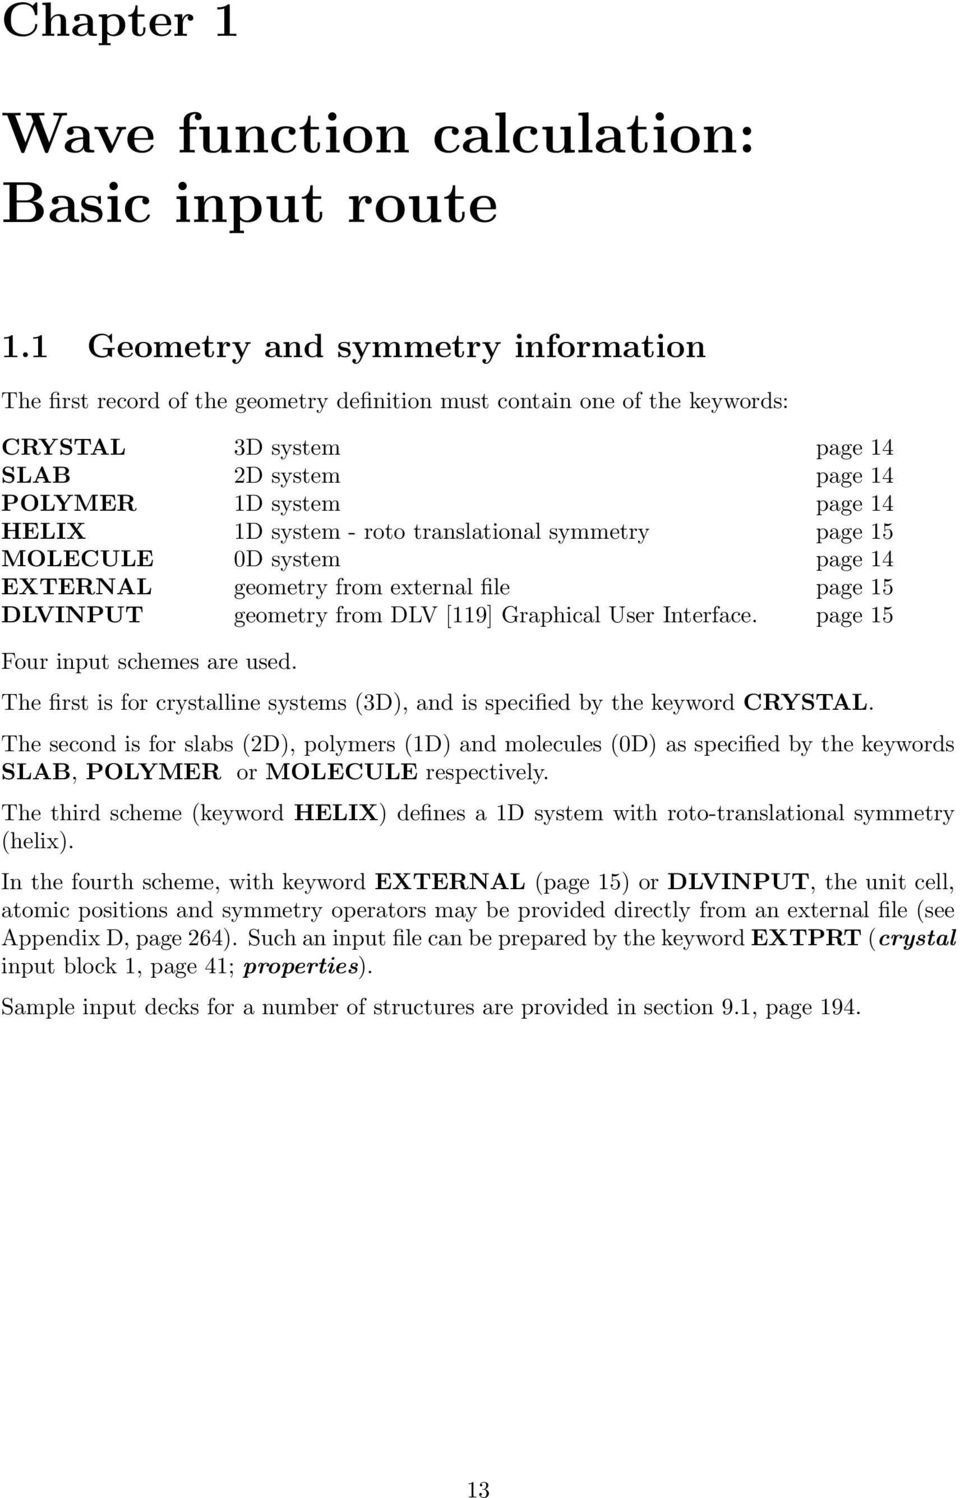 system - roto translational symmetry page 15 MOLECULE 0D system page 14 EXTERNAL geometry from external file page 15 DLVINPUT geometry from DLV [119] Graphical User Interface.